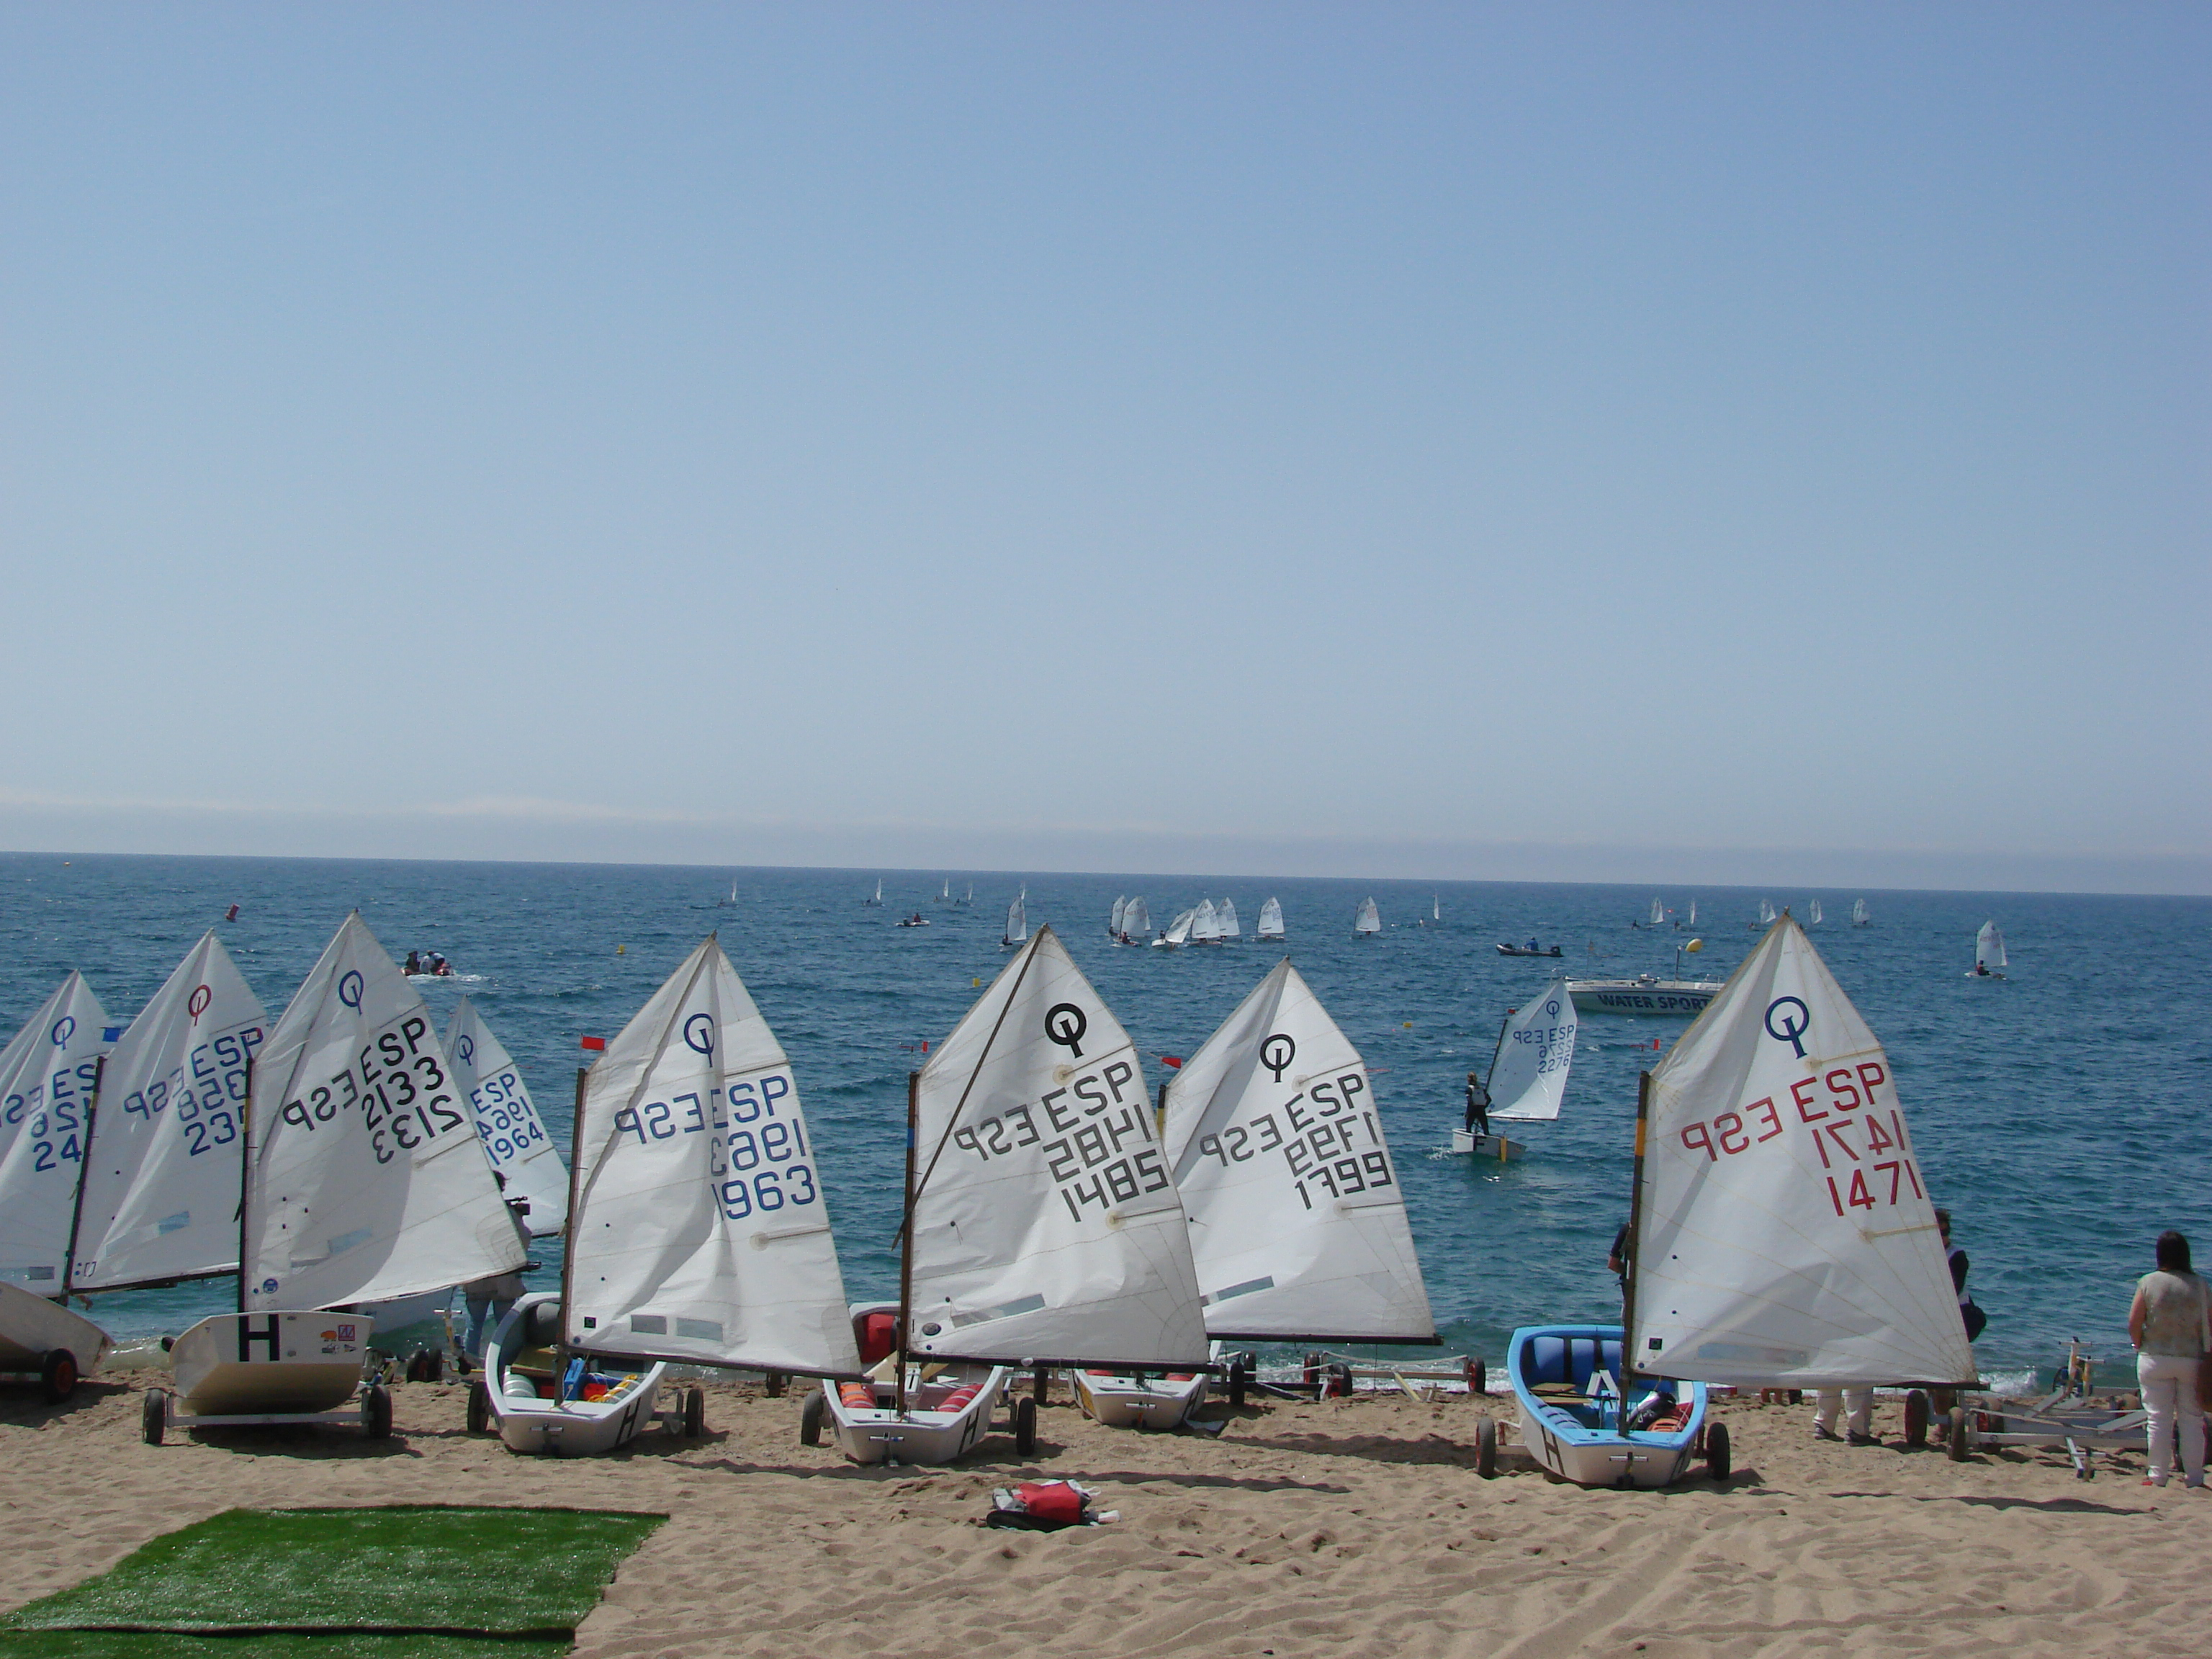 REGATA FRESO / FINAL OPTIMIST MARESMA